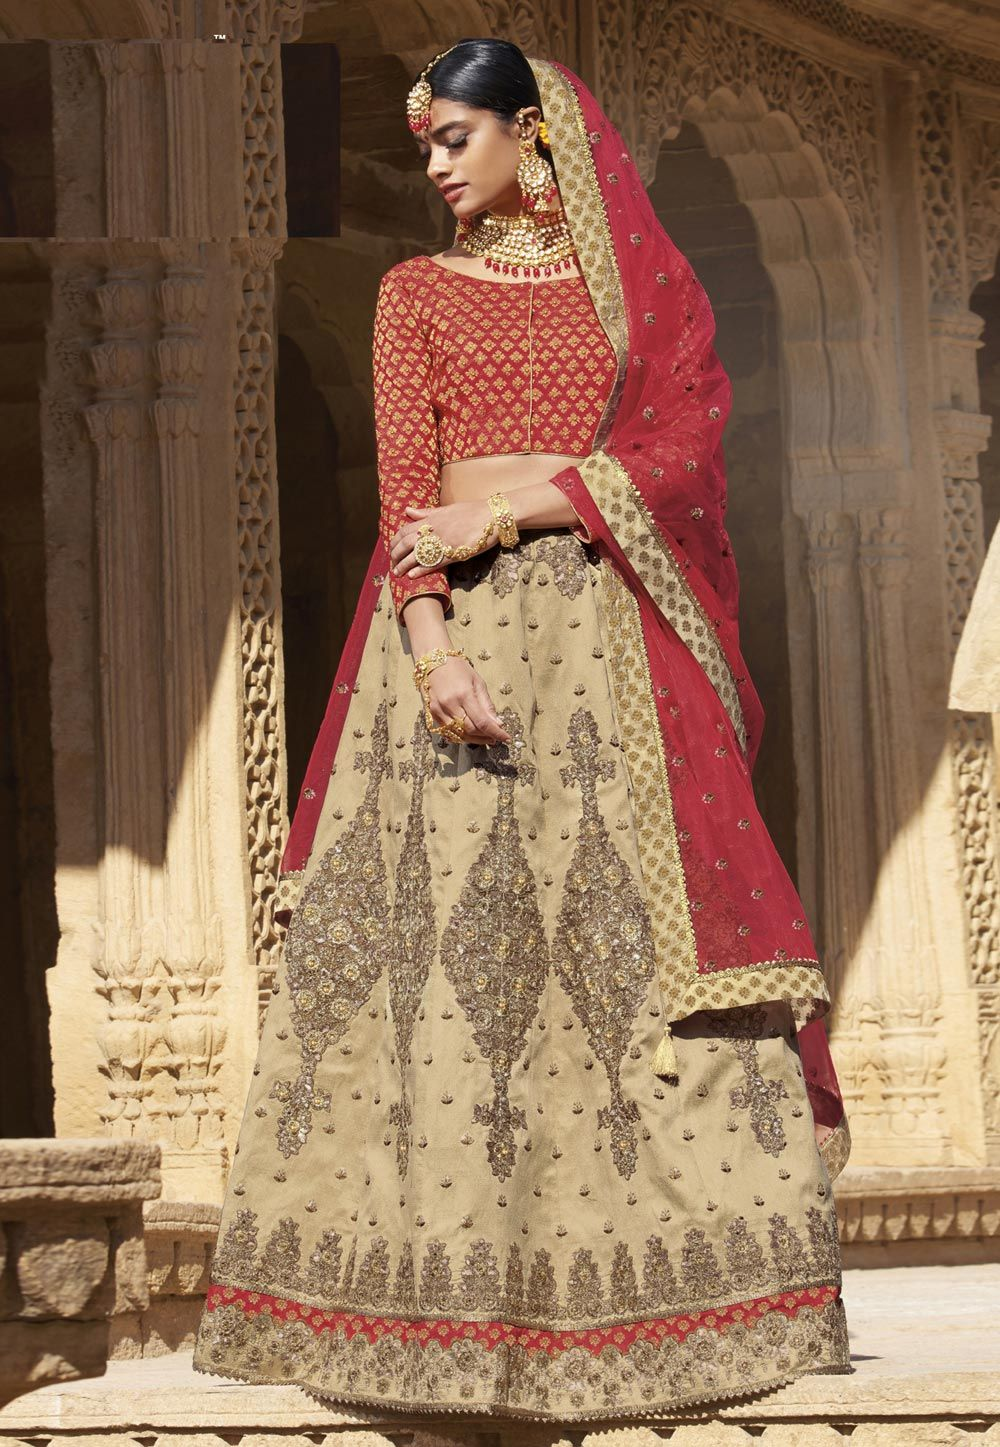 f3786a6e1d Buy Beige Raw Silk A Line Lehenga Choli 156043 online at best price from  vast collection of Lehenga Choli and Chaniya Choli at Indianclothstore.com.